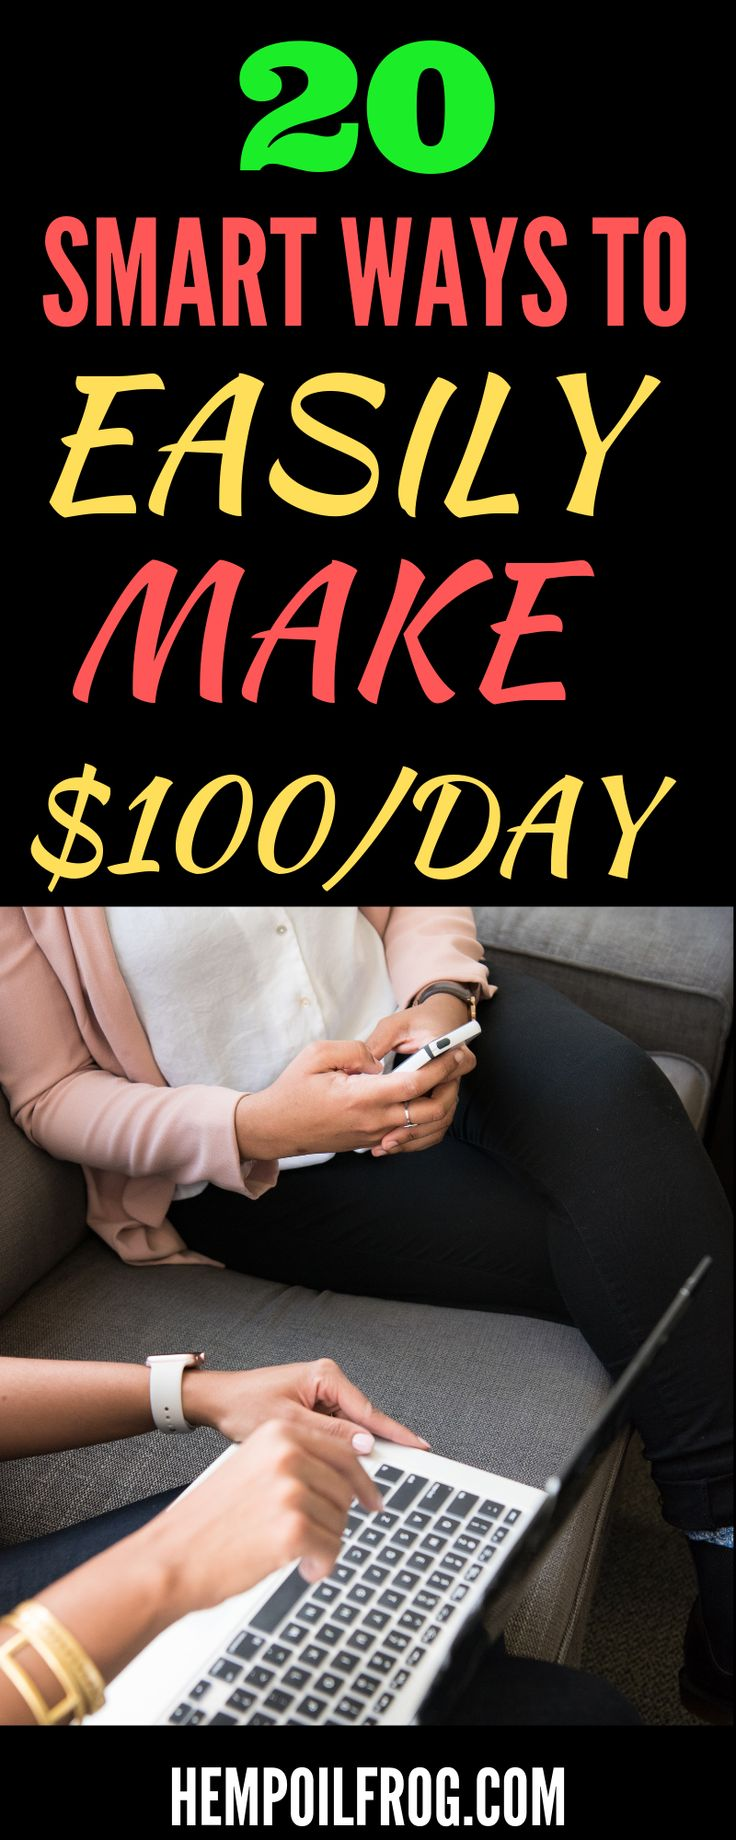 20 Smart ways to easily make $100/day – Best of Hempolfrog